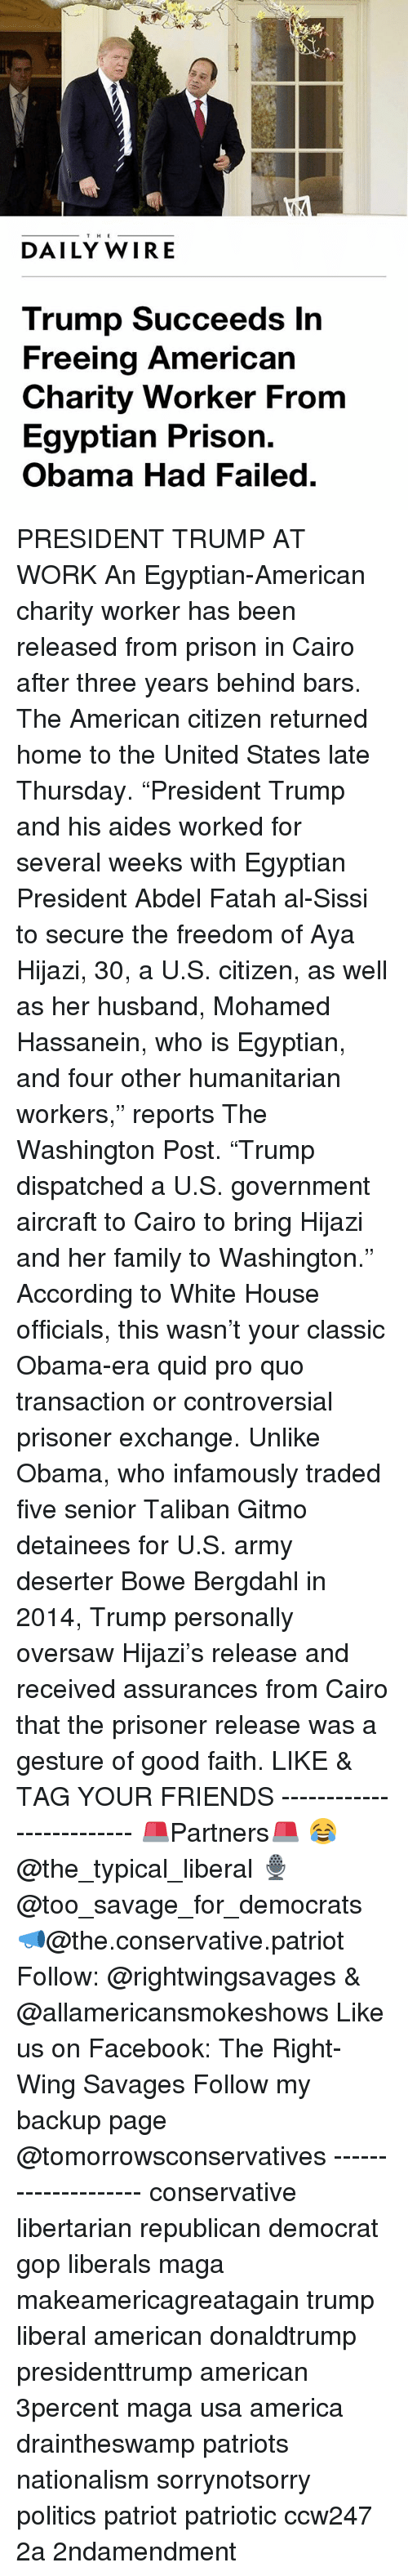 """sissy: THE  DAILY WIRE  Trump Succeeds In  Freeing American  Charity Worker From  Egyptian Prison.  Obama Had Failed PRESIDENT TRUMP AT WORK An Egyptian-American charity worker has been released from prison in Cairo after three years behind bars. The American citizen returned home to the United States late Thursday. """"President Trump and his aides worked for several weeks with Egyptian President Abdel Fatah al-Sissi to secure the freedom of Aya Hijazi, 30, a U.S. citizen, as well as her husband, Mohamed Hassanein, who is Egyptian, and four other humanitarian workers,"""" reports The Washington Post. """"Trump dispatched a U.S. government aircraft to Cairo to bring Hijazi and her family to Washington."""" According to White House officials, this wasn't your classic Obama-era quid pro quo transaction or controversial prisoner exchange. Unlike Obama, who infamously traded five senior Taliban Gitmo detainees for U.S. army deserter Bowe Bergdahl in 2014, Trump personally oversaw Hijazi's release and received assurances from Cairo that the prisoner release was a gesture of good faith. LIKE & TAG YOUR FRIENDS ------------------------- 🚨Partners🚨 😂@the_typical_liberal 🎙@too_savage_for_democrats 📣@the.conservative.patriot Follow: @rightwingsavages & @allamericansmokeshows Like us on Facebook: The Right-Wing Savages Follow my backup page @tomorrowsconservatives -------------------- conservative libertarian republican democrat gop liberals maga makeamericagreatagain trump liberal american donaldtrump presidenttrump american 3percent maga usa america draintheswamp patriots nationalism sorrynotsorry politics patriot patriotic ccw247 2a 2ndamendment"""